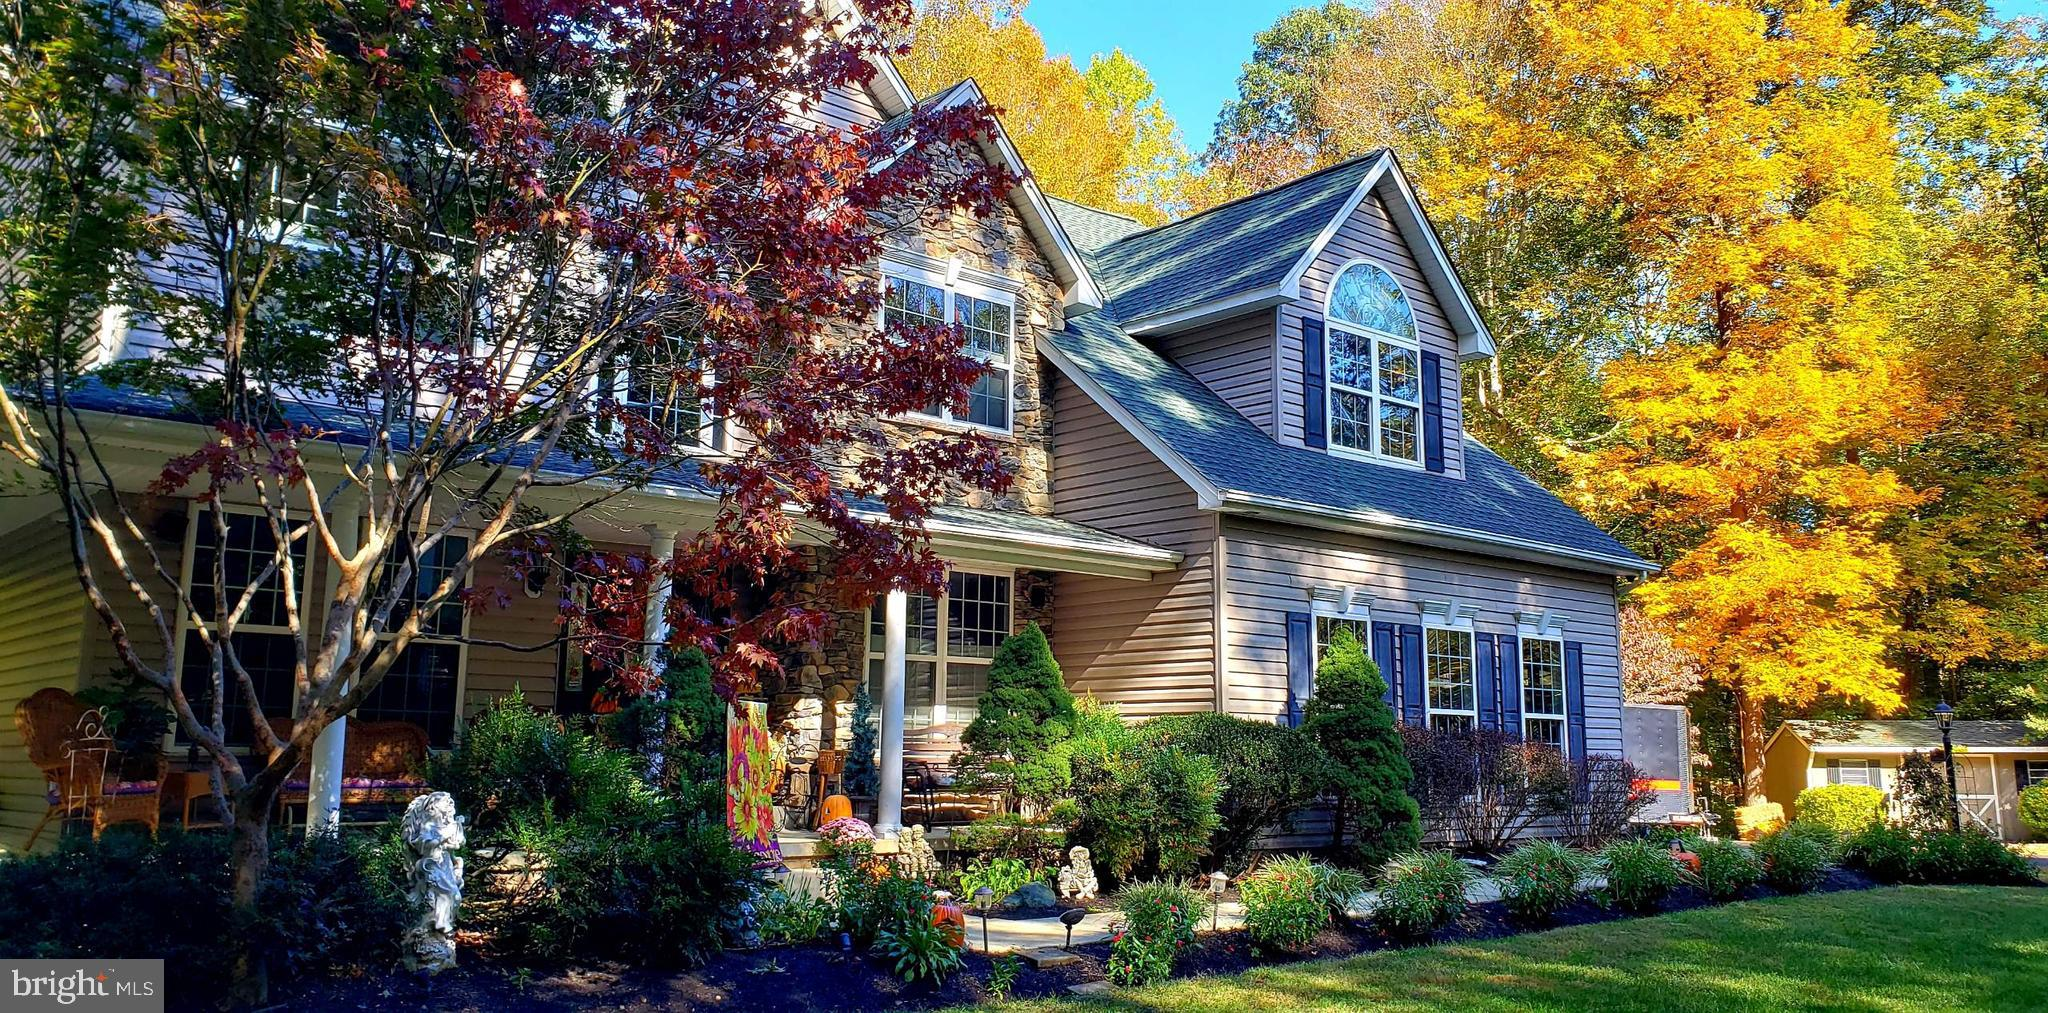 5470 WILLIAM STONE PLACE, WELCOME, MD 20693